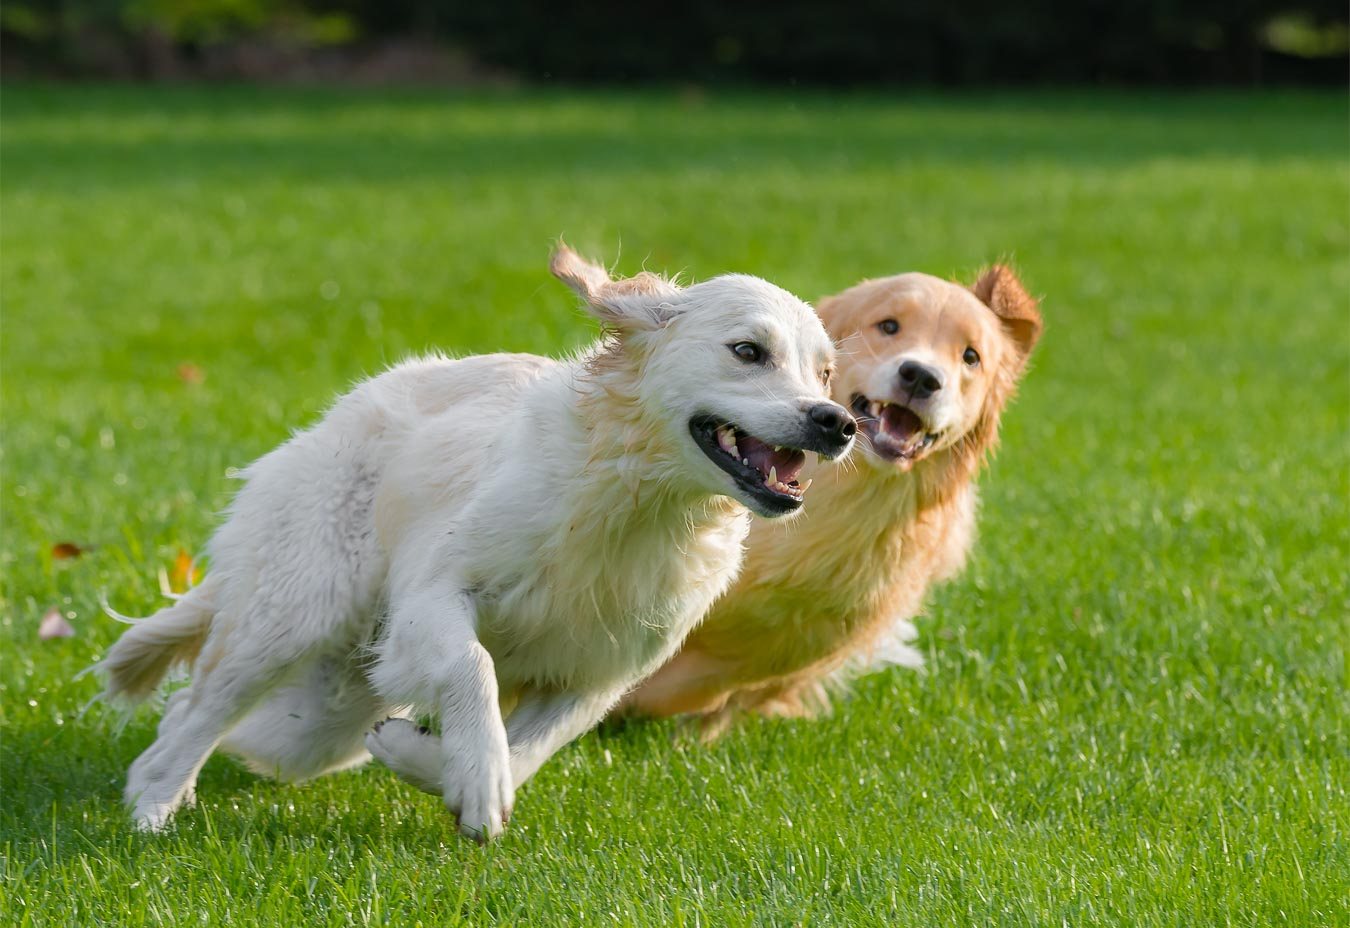 Two Golden Retrievers chasing each other